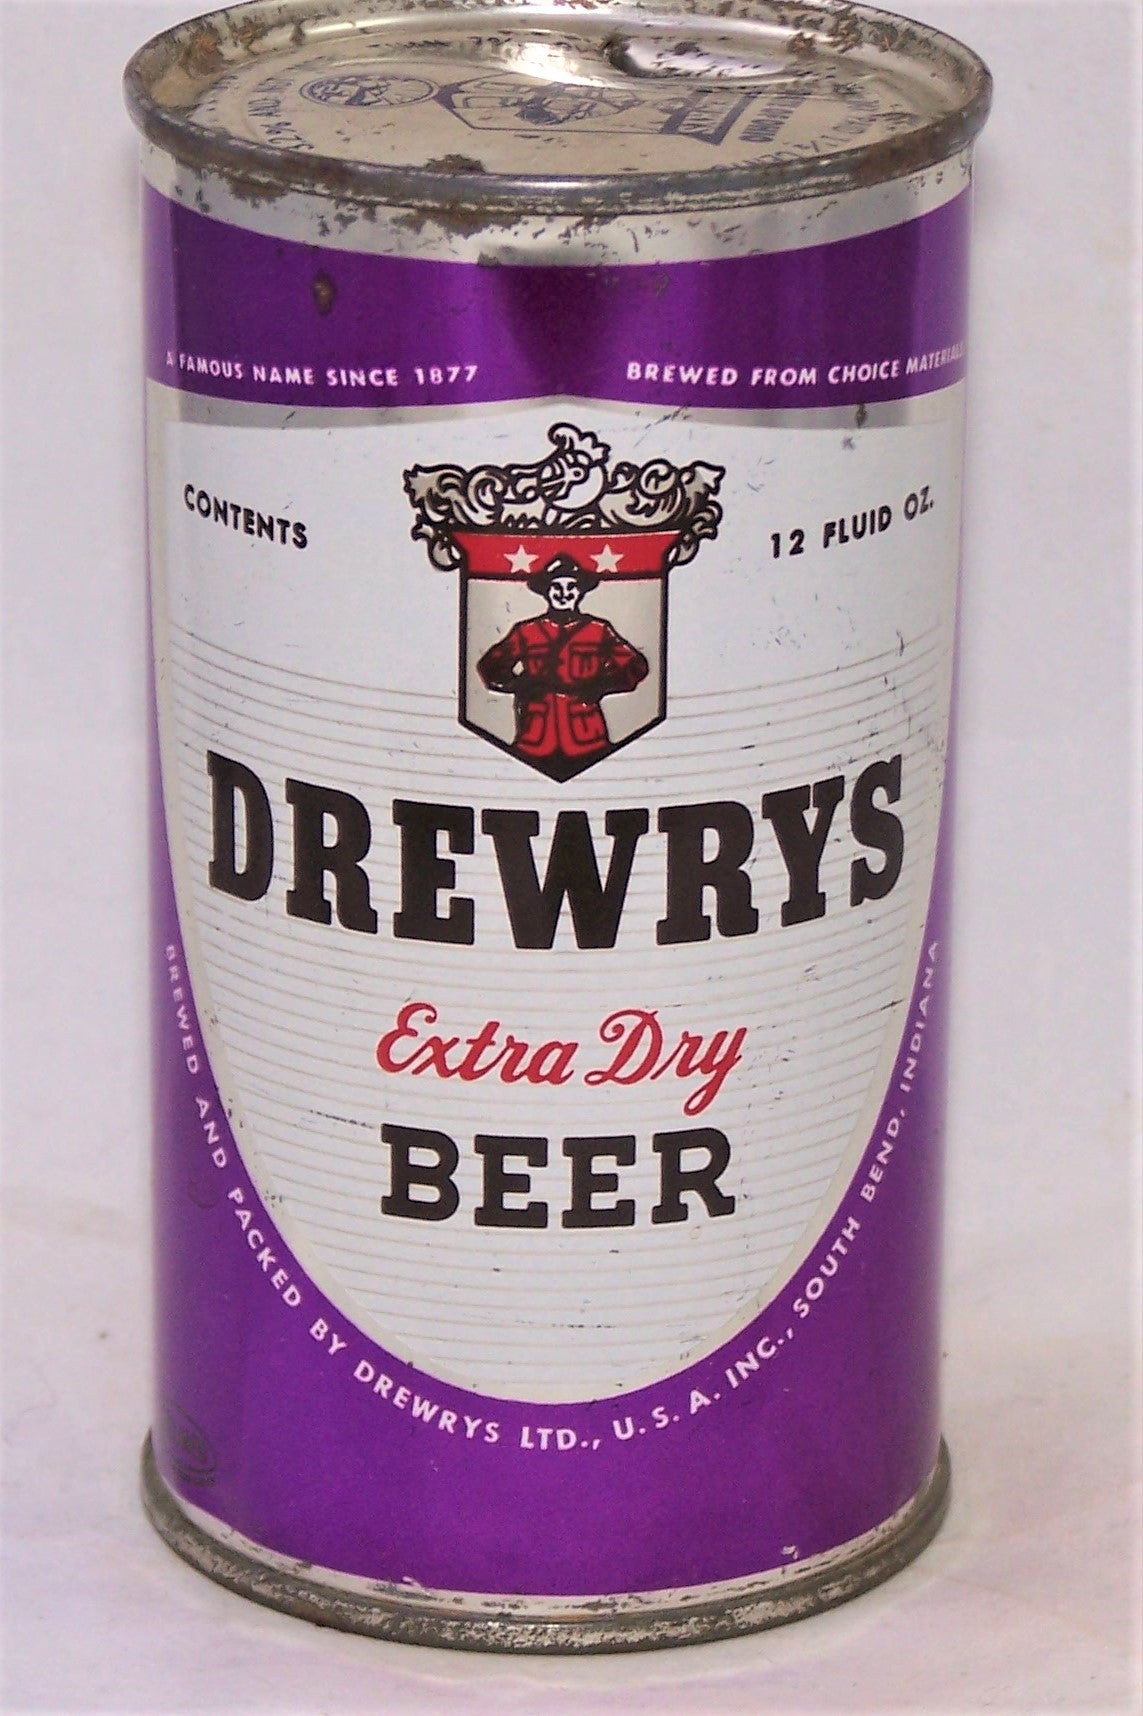 Drewrys Extra Dry (Your Character) USBC 57-01, Grade 1